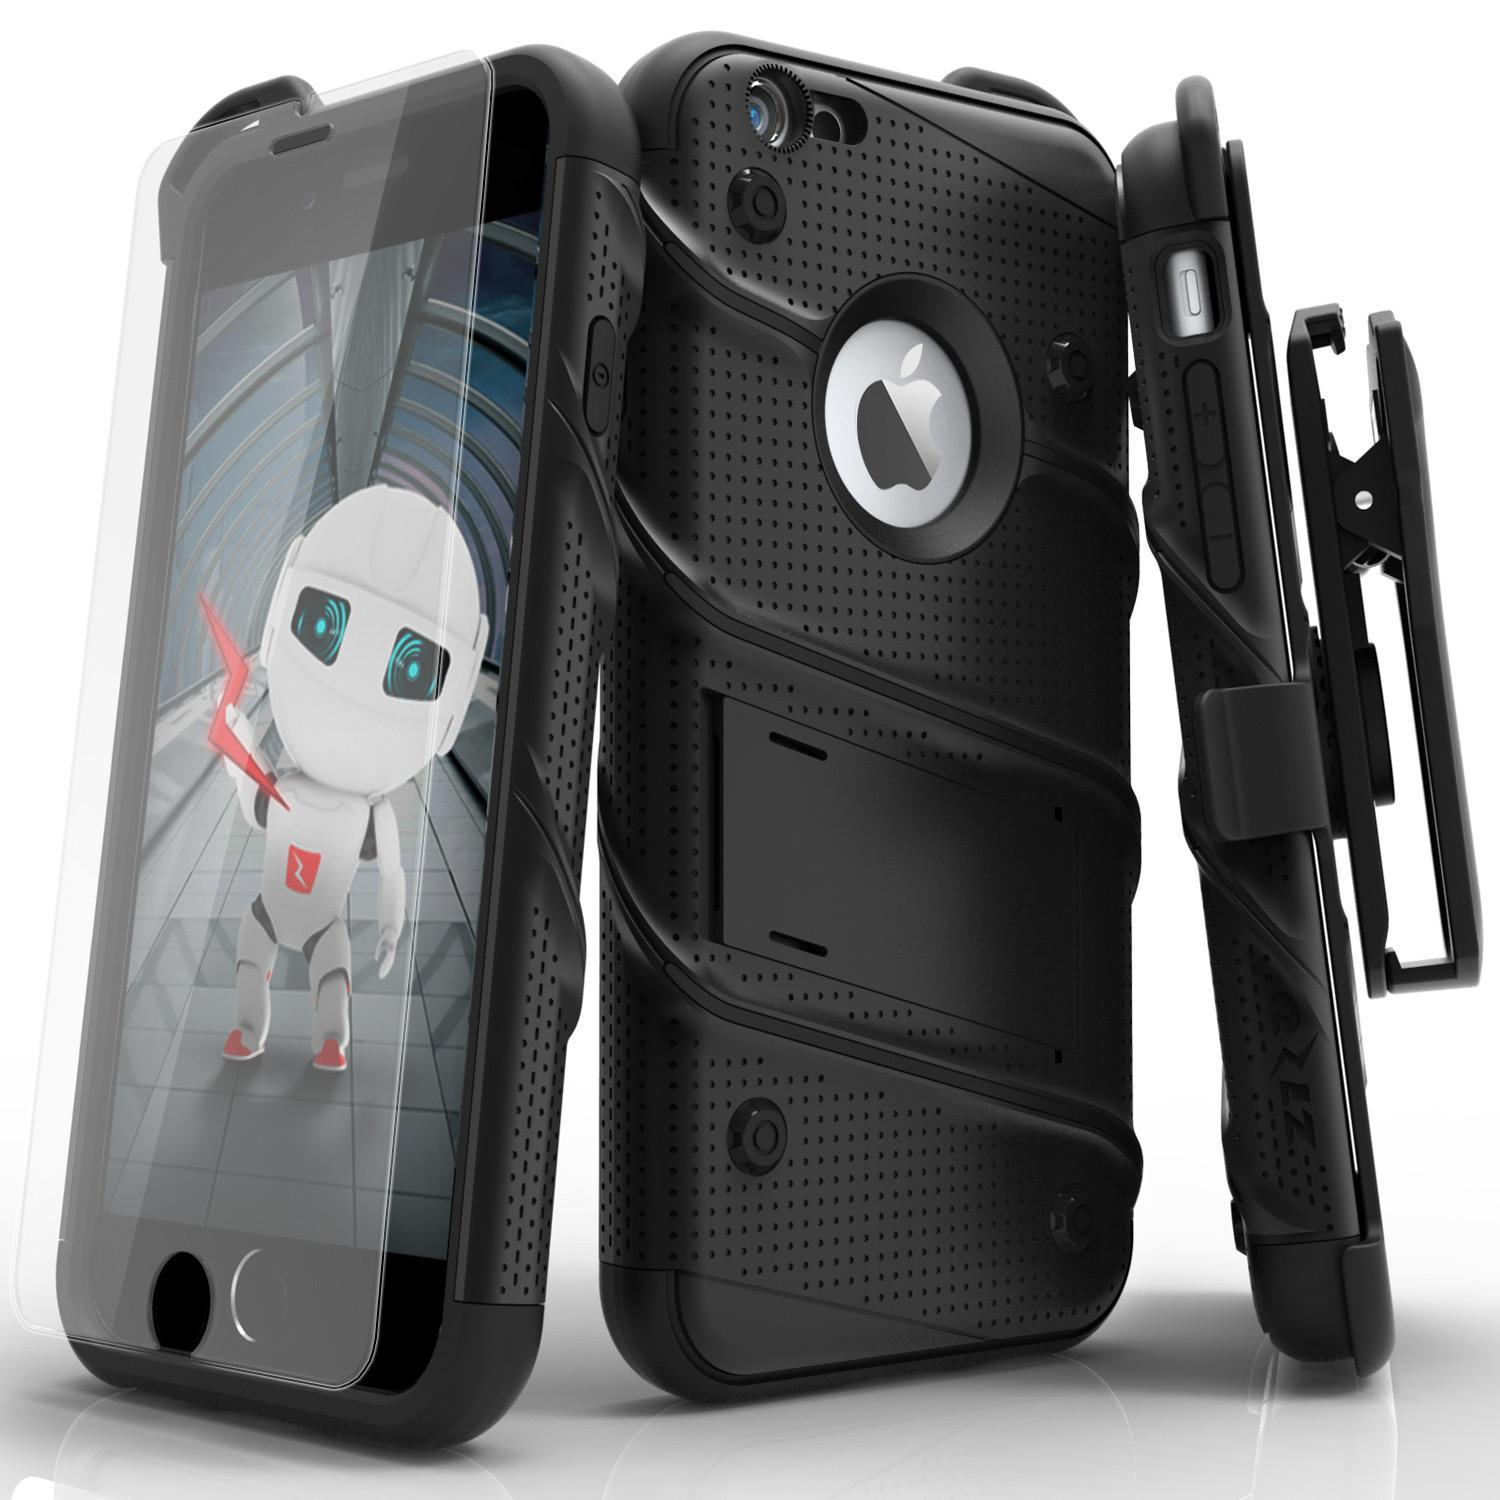 ZIZO BOLT Series for iPhone 6s Plus with Kickstand Holster and Lanyard - Black/Black